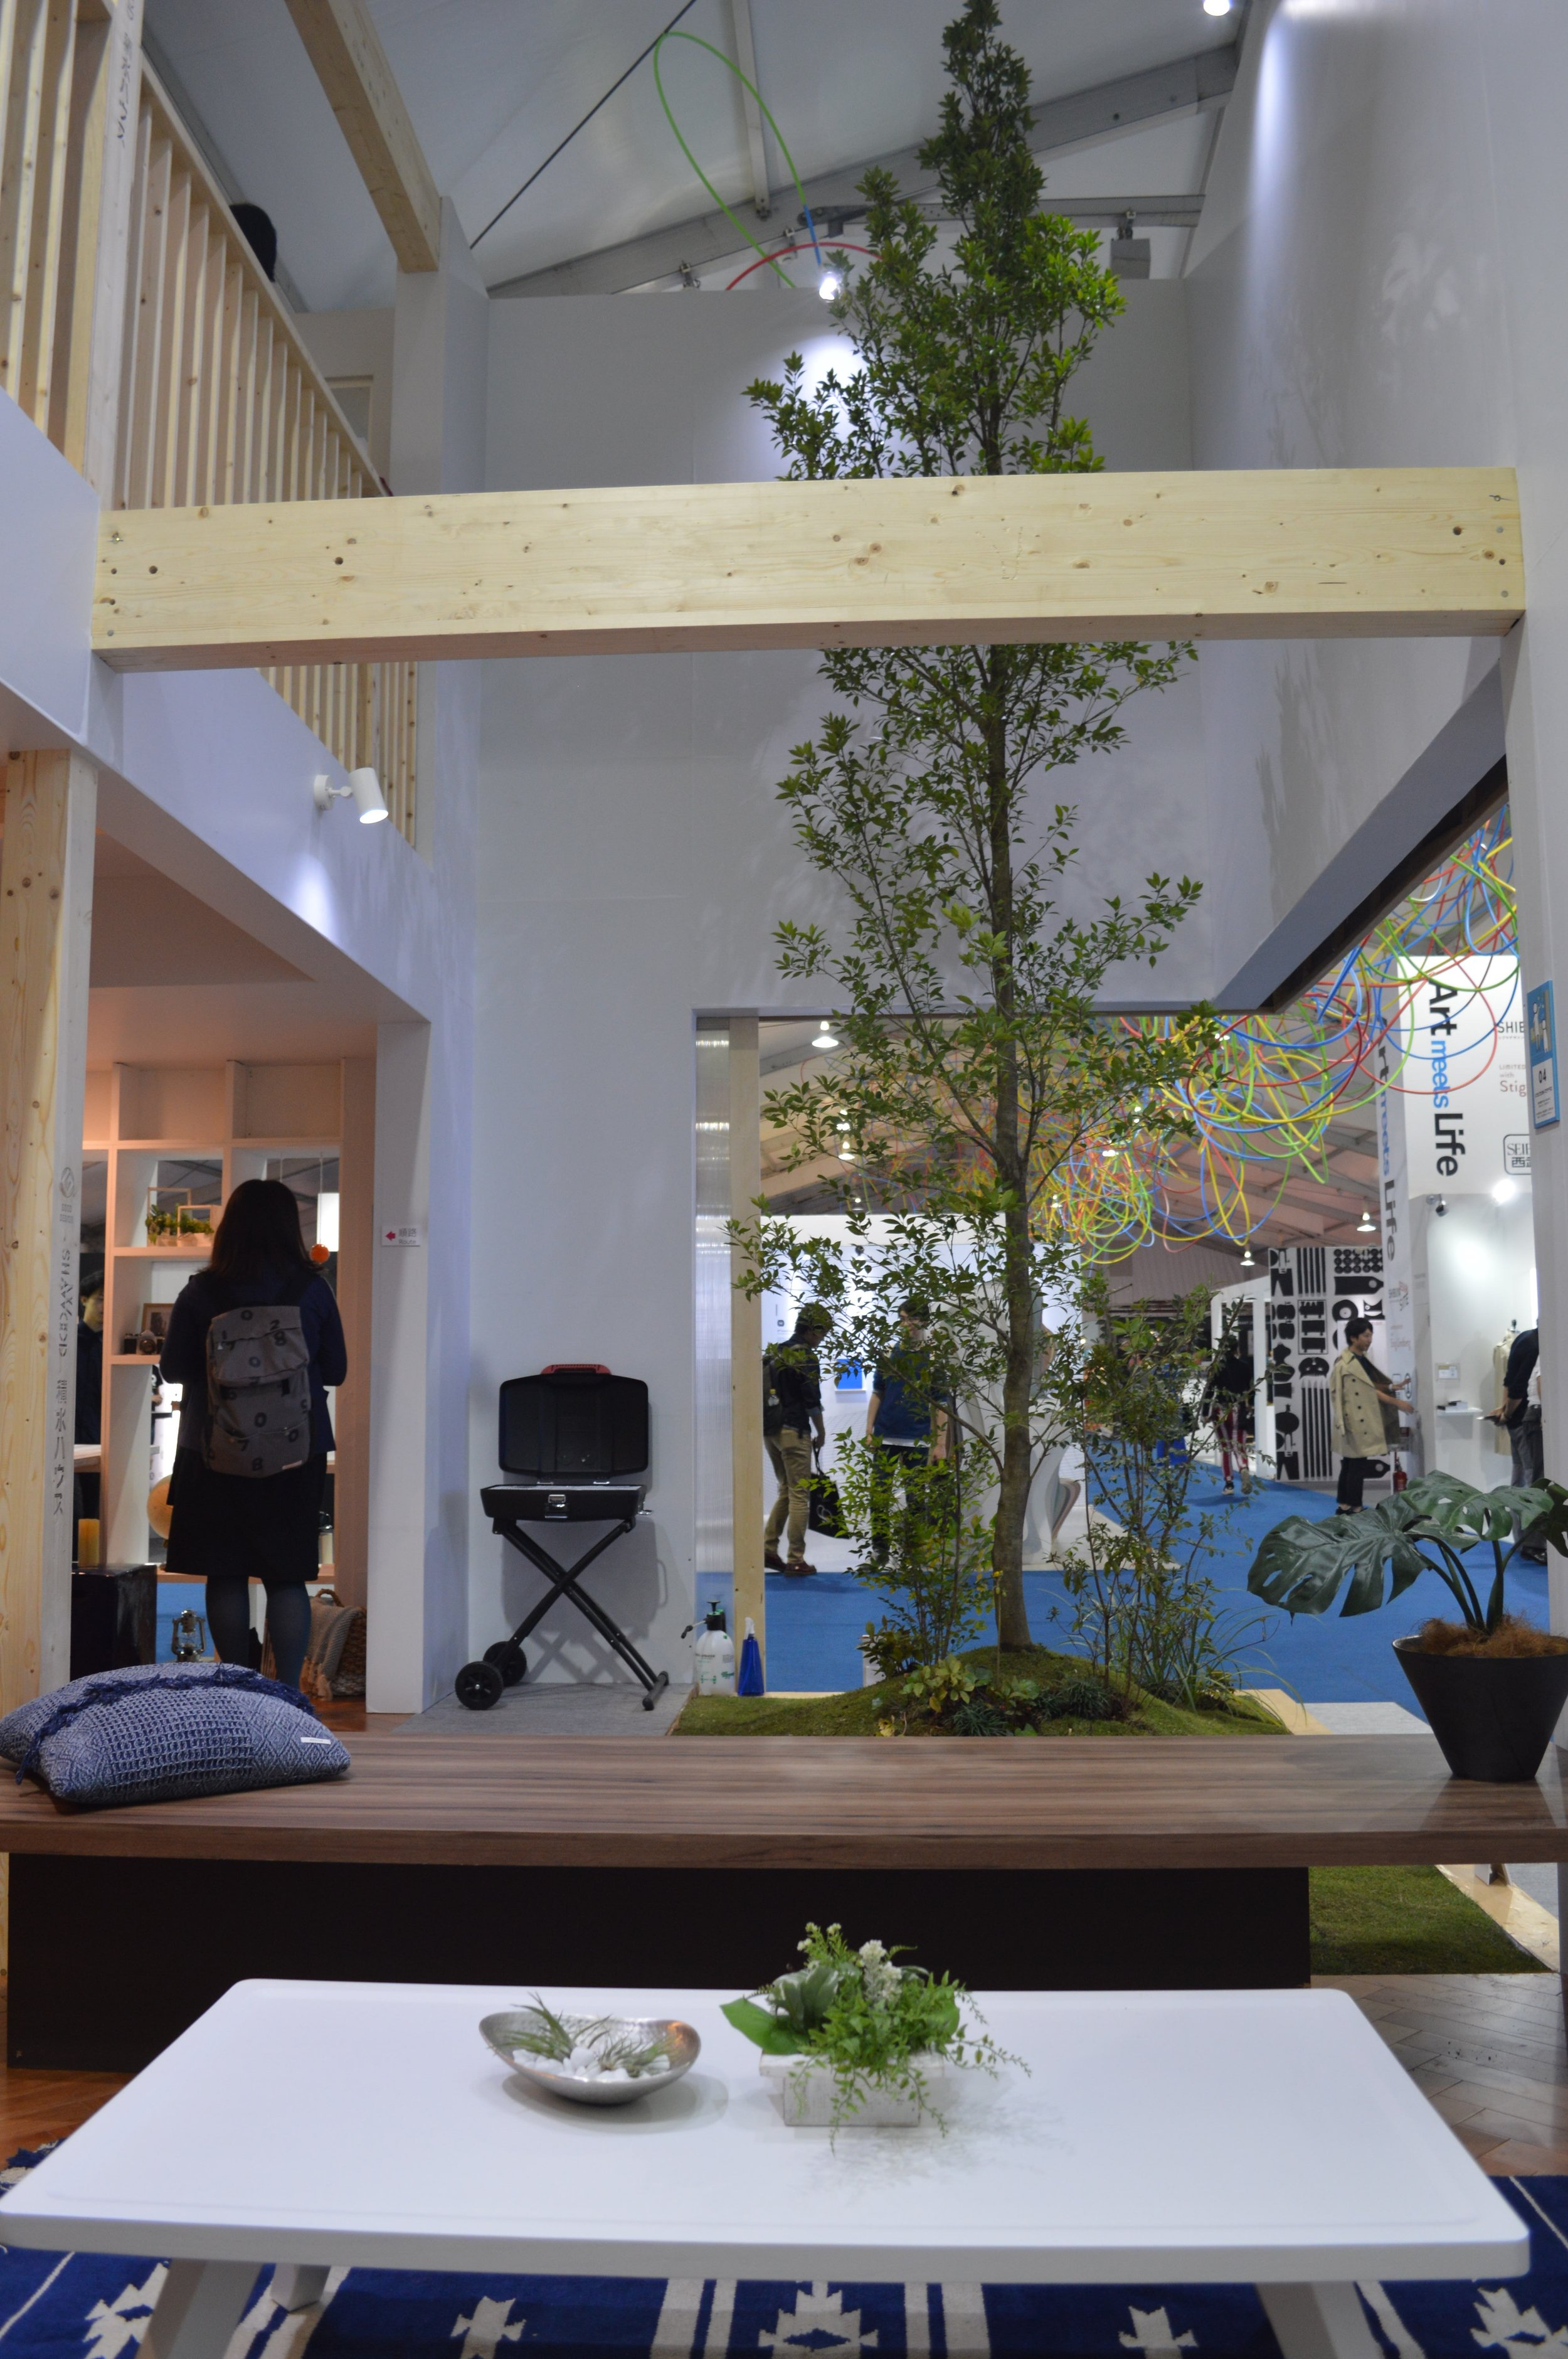 Tokidoki-oide Terrace: A flexible courtyard with a sculptural tree. It becomes a private space by closing the outer doors or an open space by leaving the doors open. This is the view from the swinging sofa in the living room.